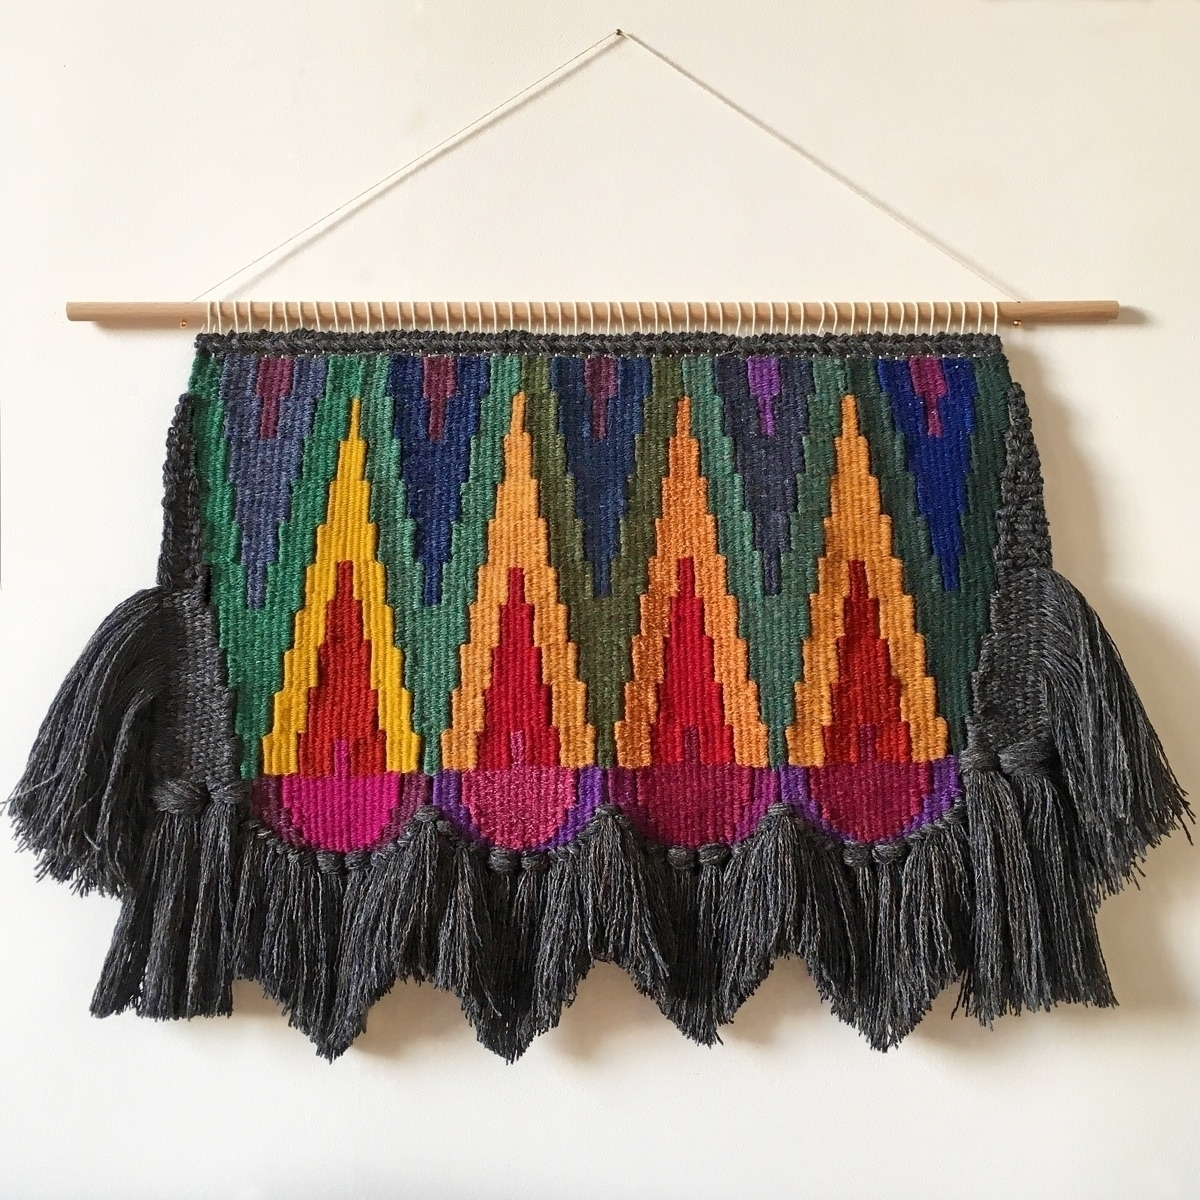 weaving, handmade, wovenwallhanging - only_a_paper_moon | ello